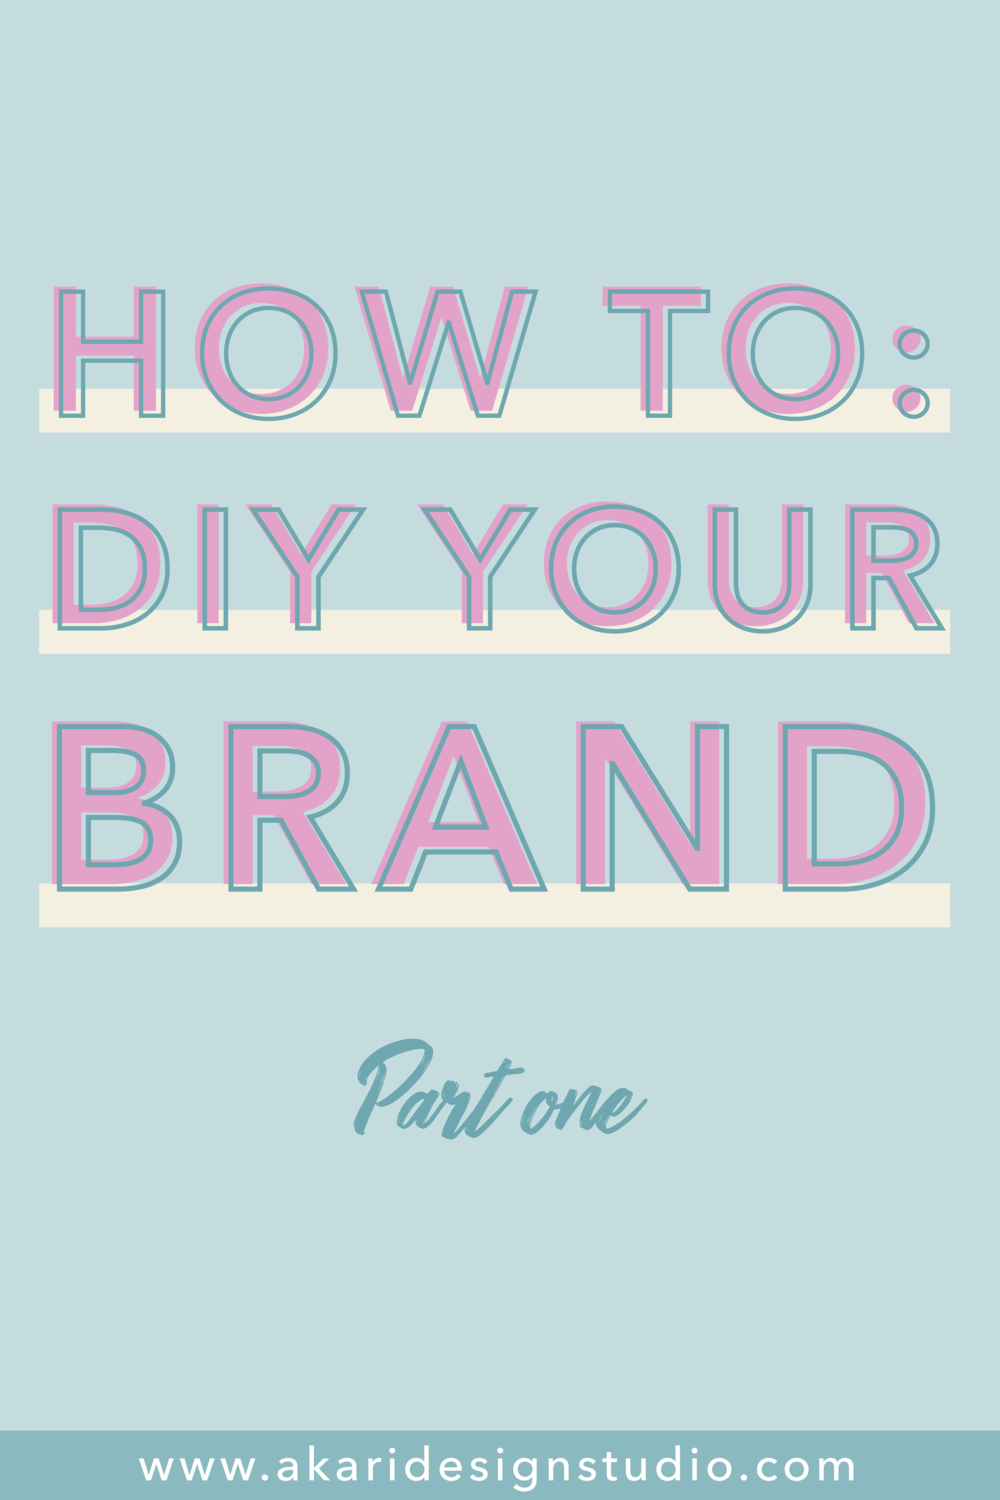 Learn to create your own brand. brand our business. design your own brand. branding basics.